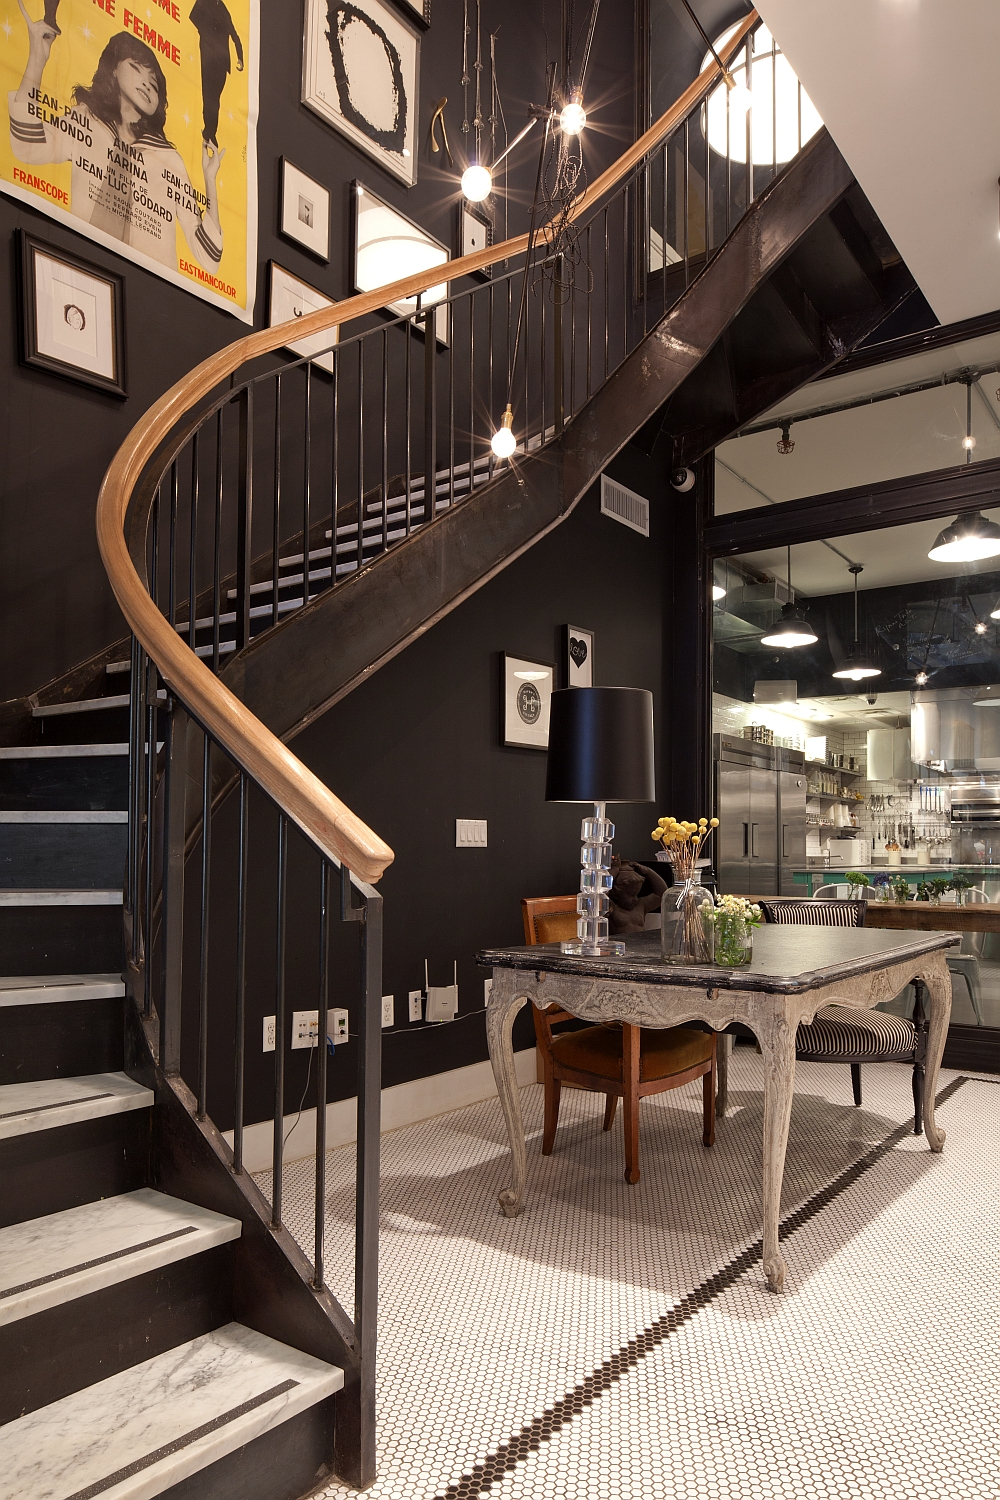 c2867__Sculptural-staircase-leading-to-the-top-level.jpg